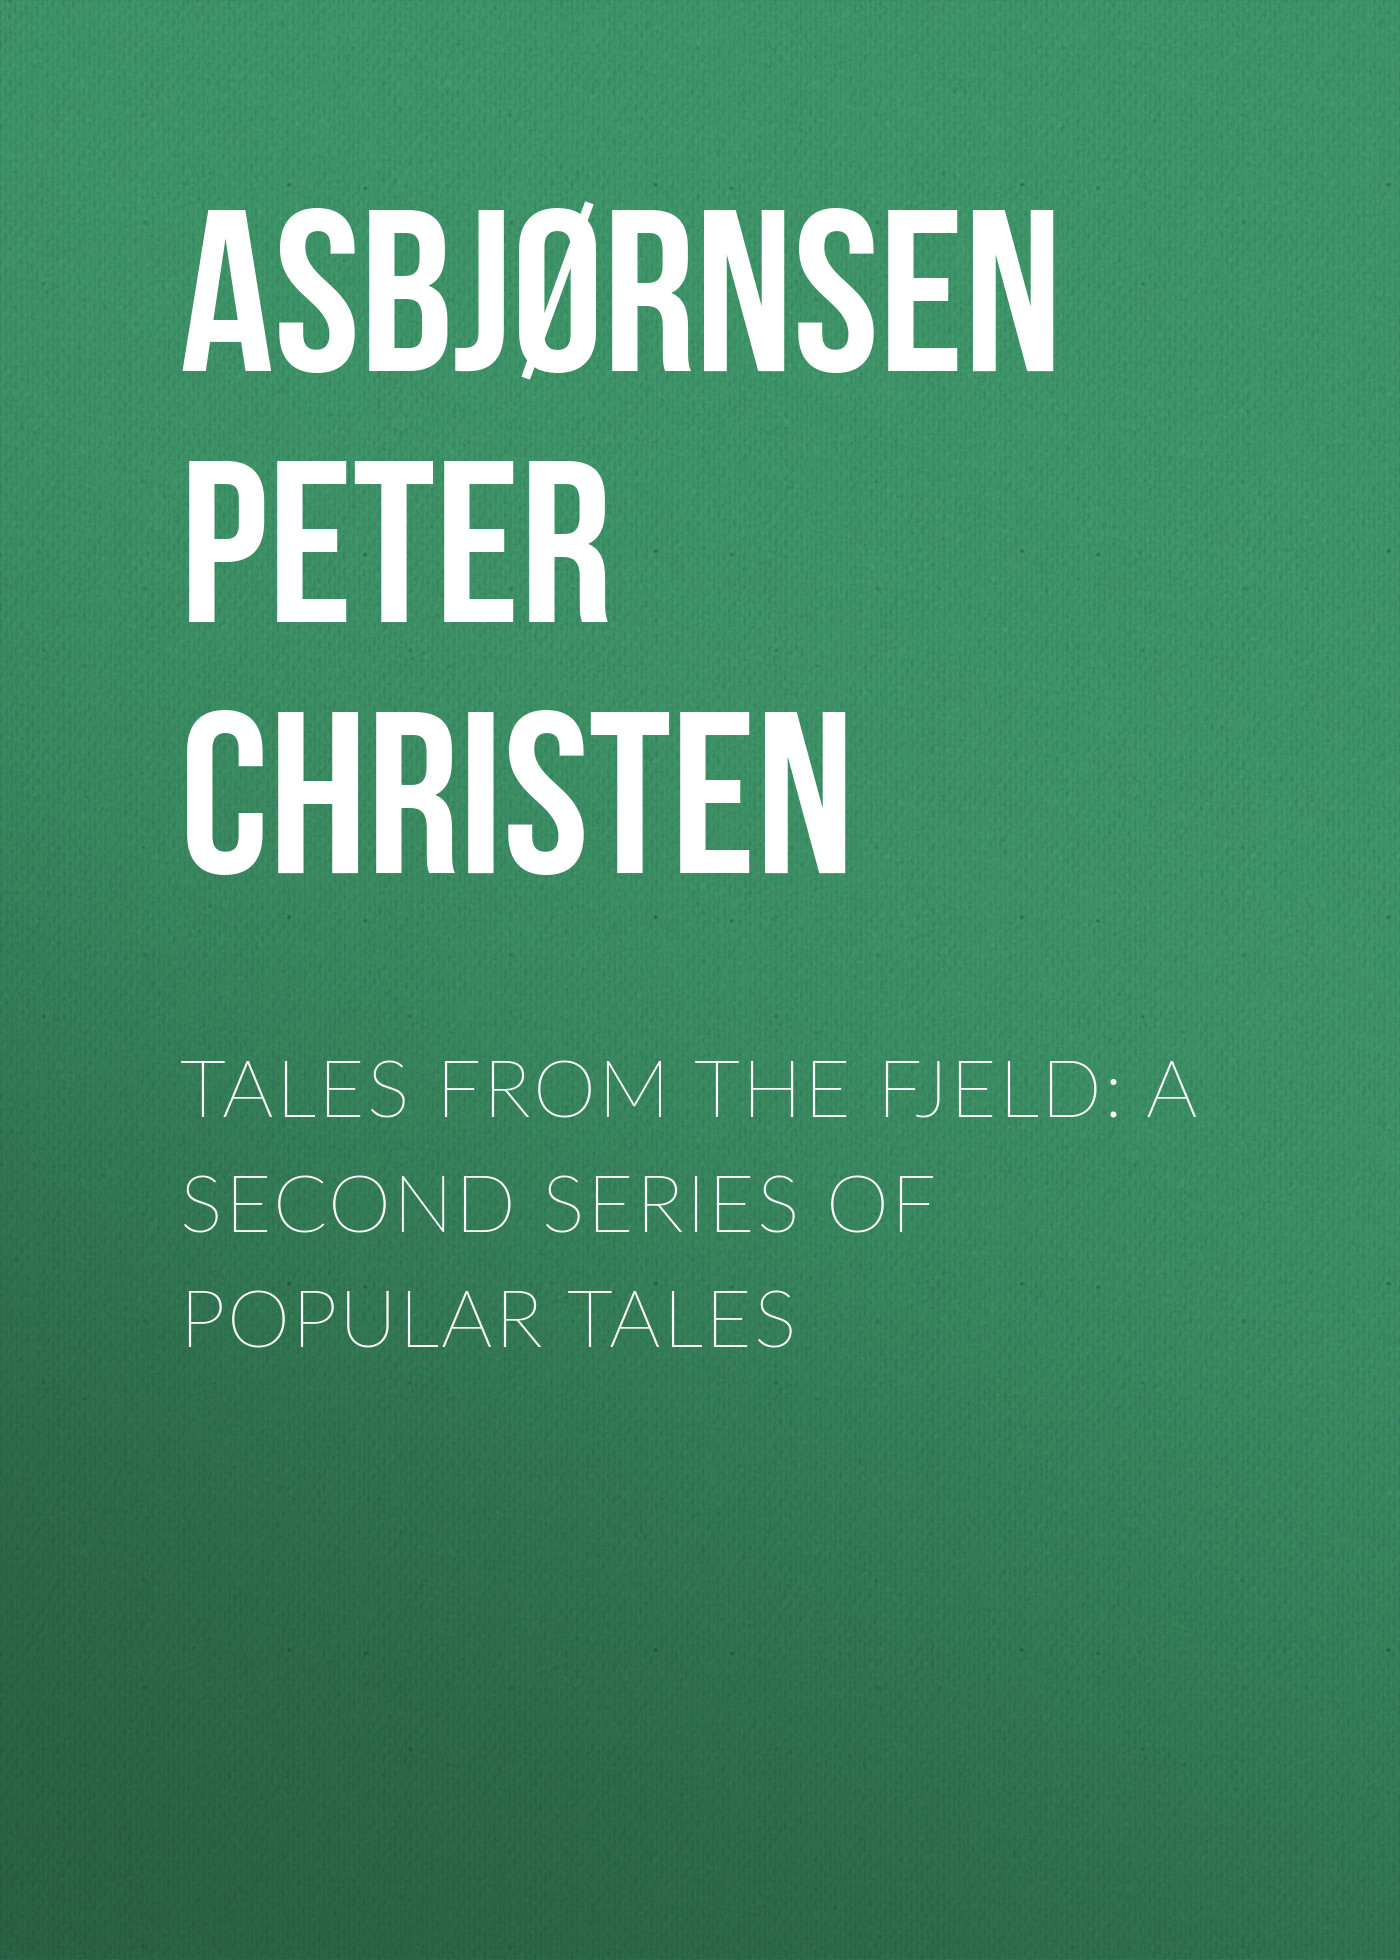 Asbjørnsen Peter Christen Tales from the Fjeld: A Second Series of Popular Tales nataliya vasilyeva the secrets of friendship fairy tales from magic forests isbn 9785448343049